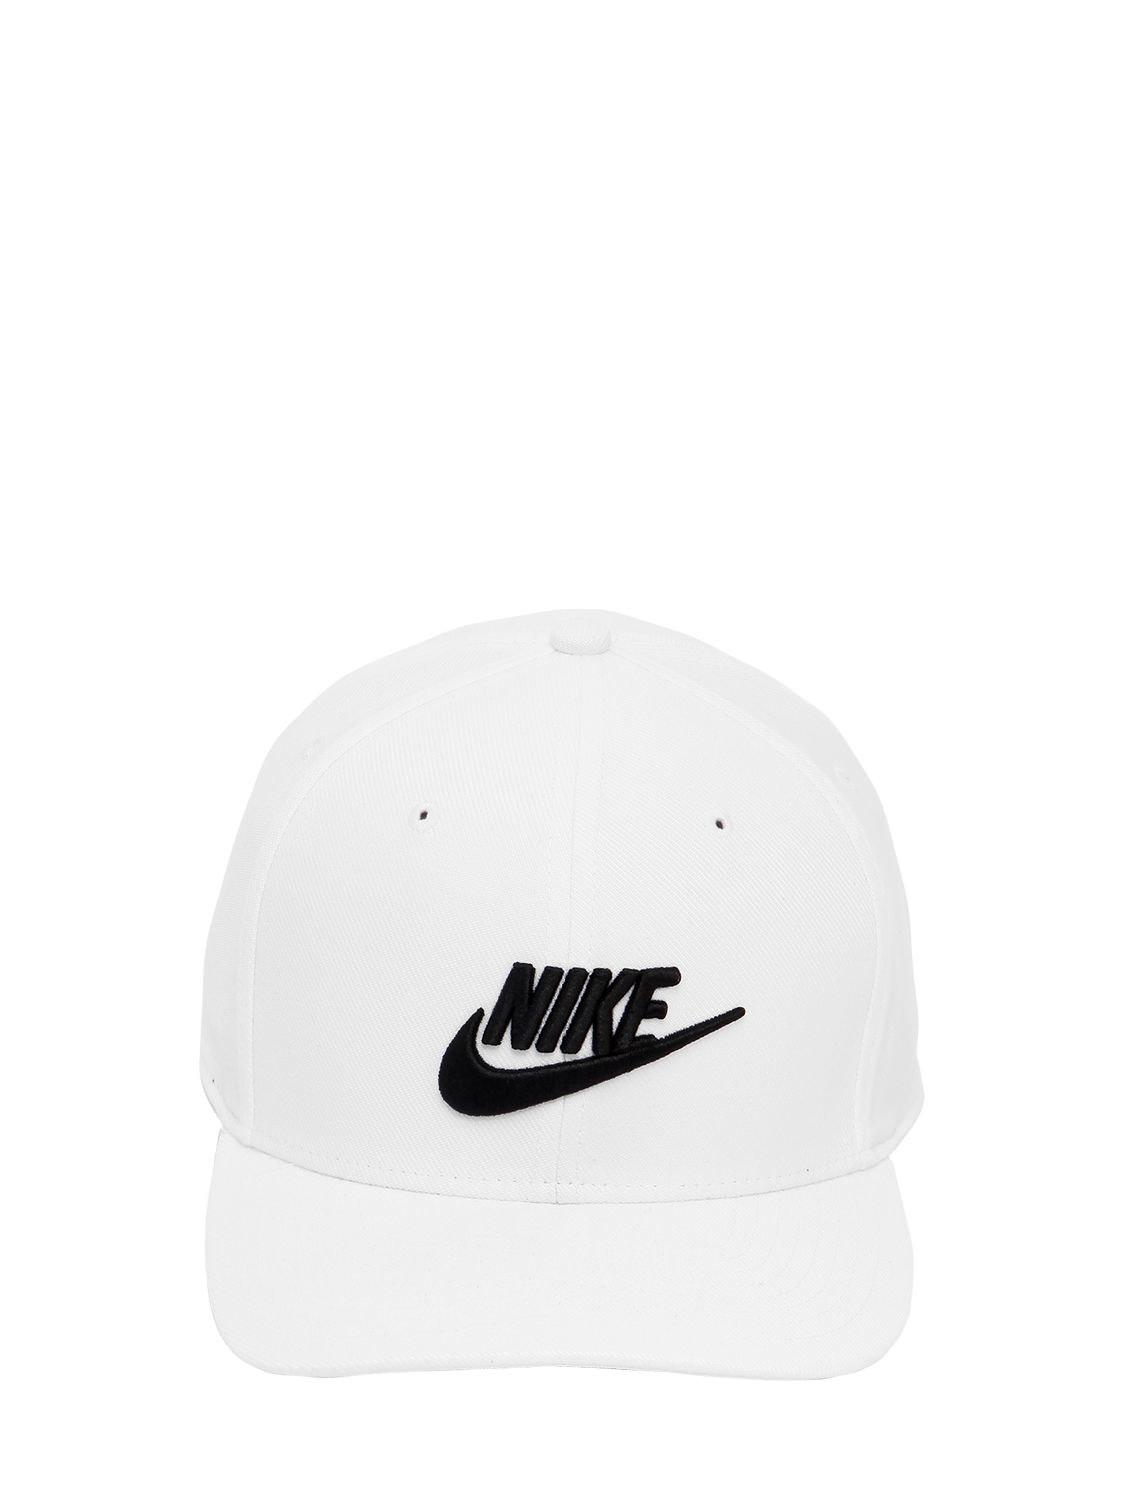 Lyst - Nike Classic 99 Cotton Twill Hat in White 3364550a642